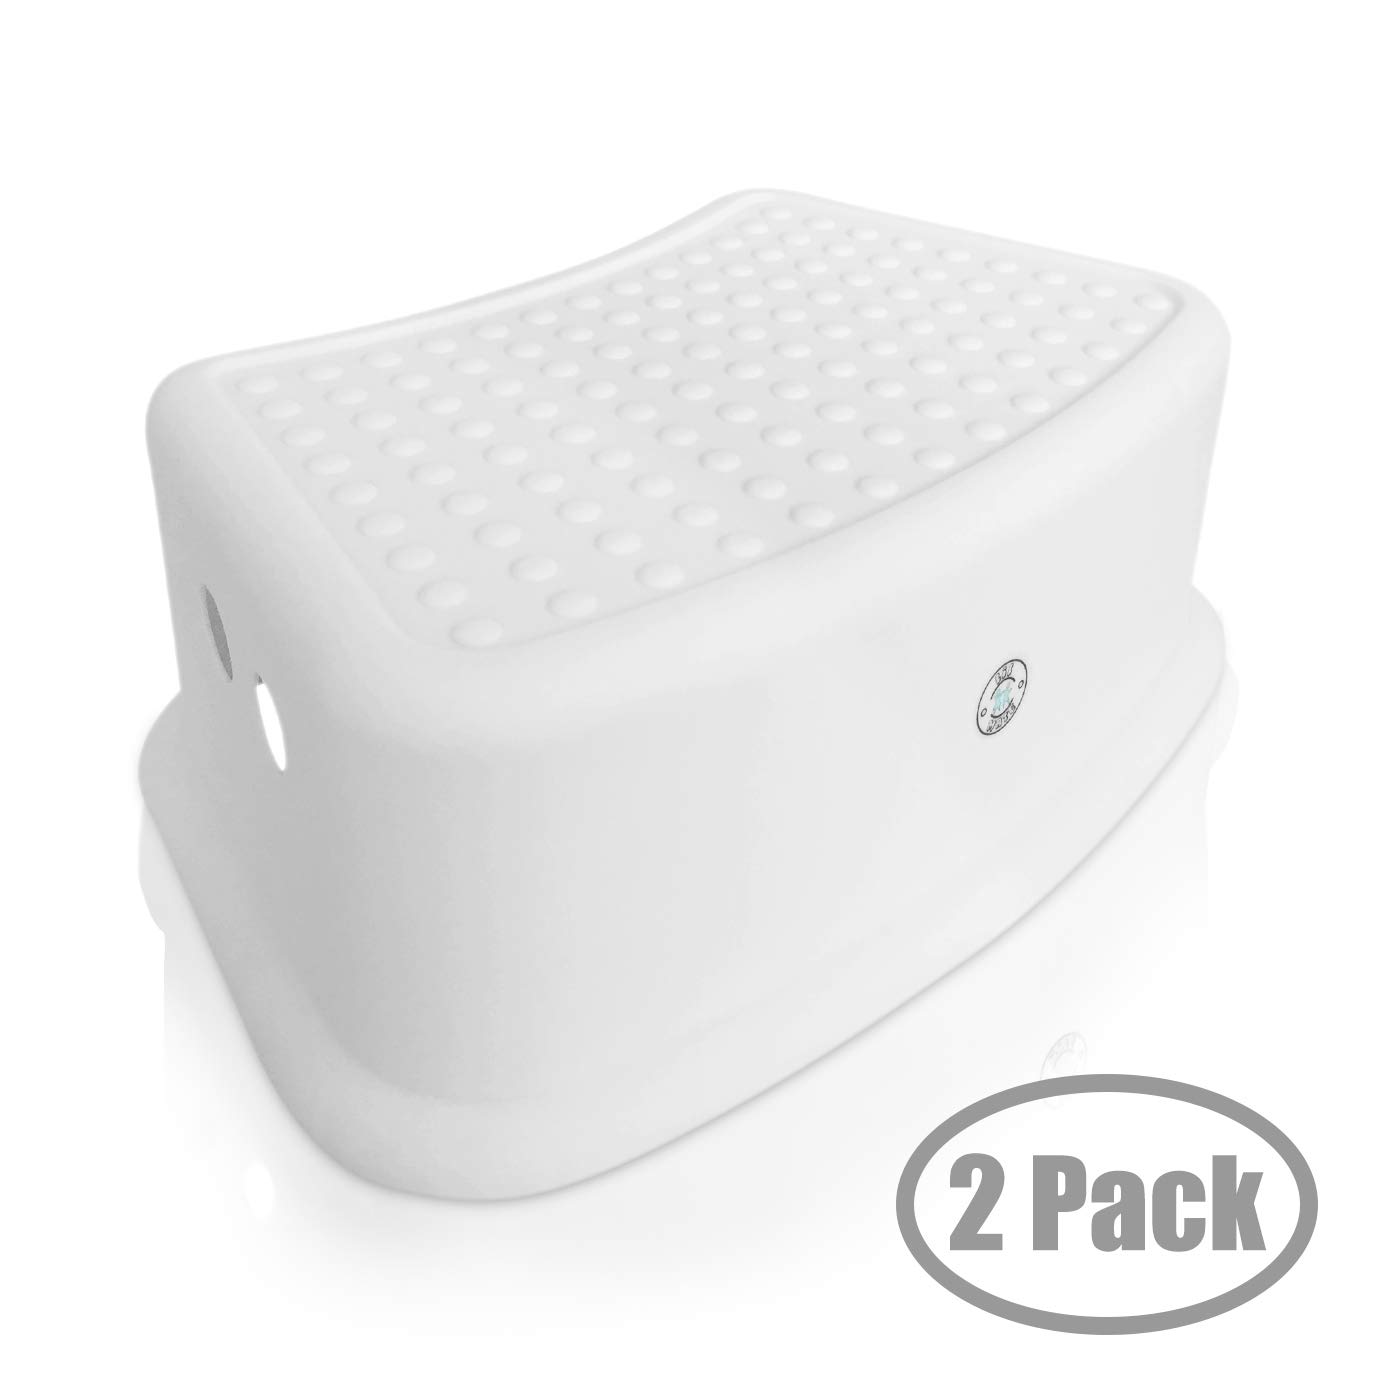 Step Stool for Kids - Toddlers Potty and Toilet Training Stepping Stool - Use in Bathroom, Sink, Bedroom, Toy Room, Kitchen, and Living Room - White (2 Pack) by Lil Mate